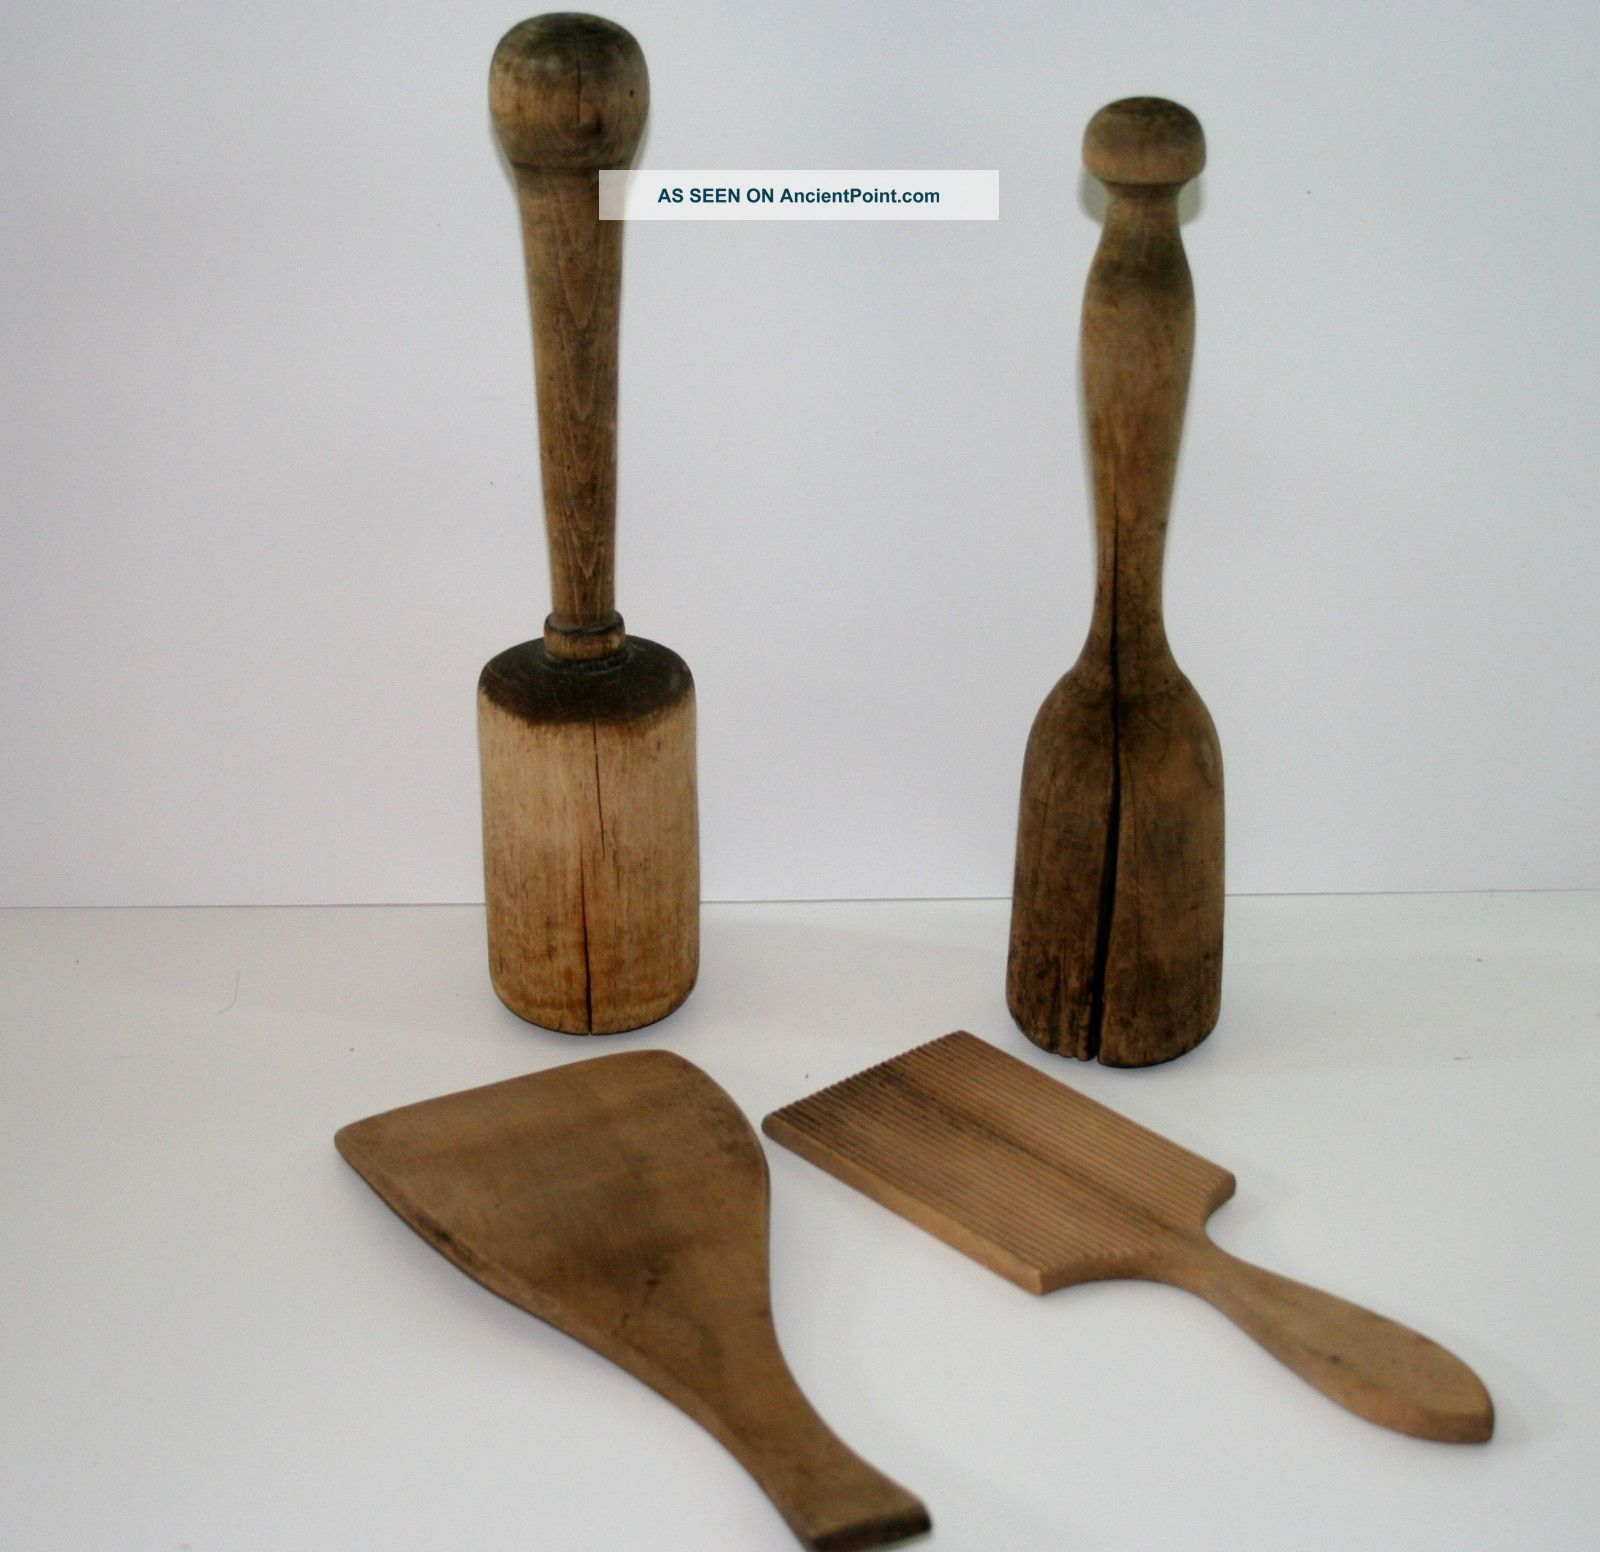 antique wooden kitchen tools and utensils Kitchen Shoping